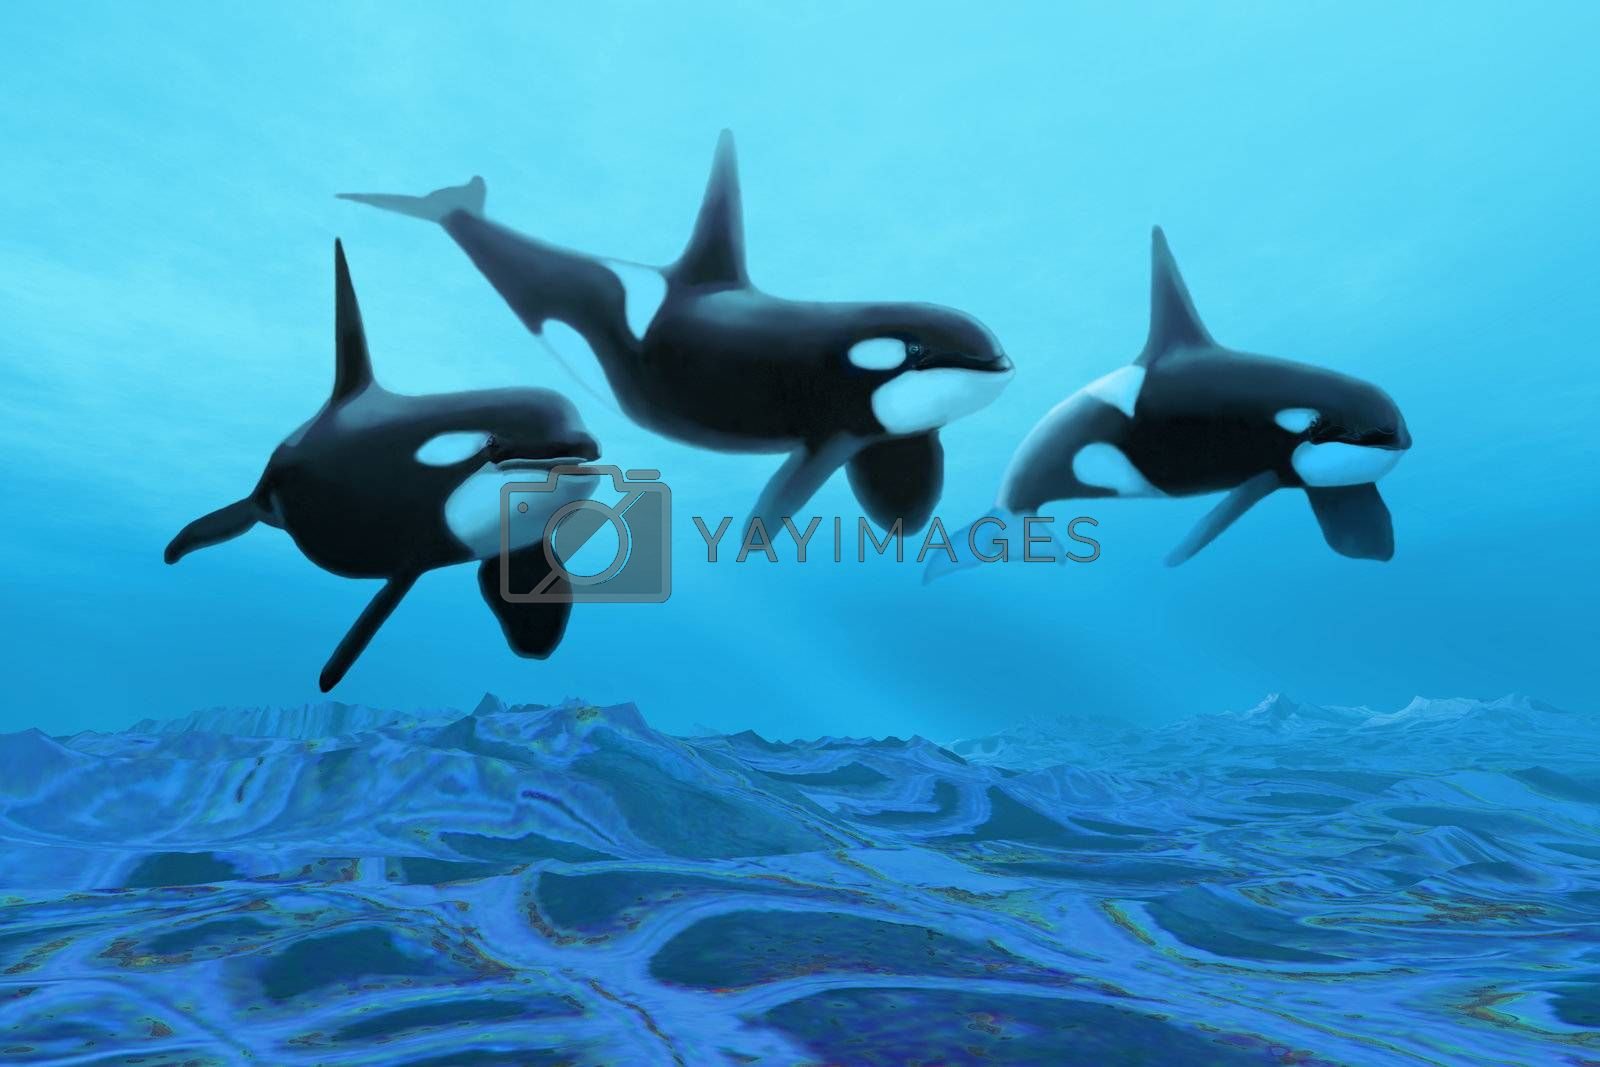 Royalty free image of WHALE WORLD by Catmando